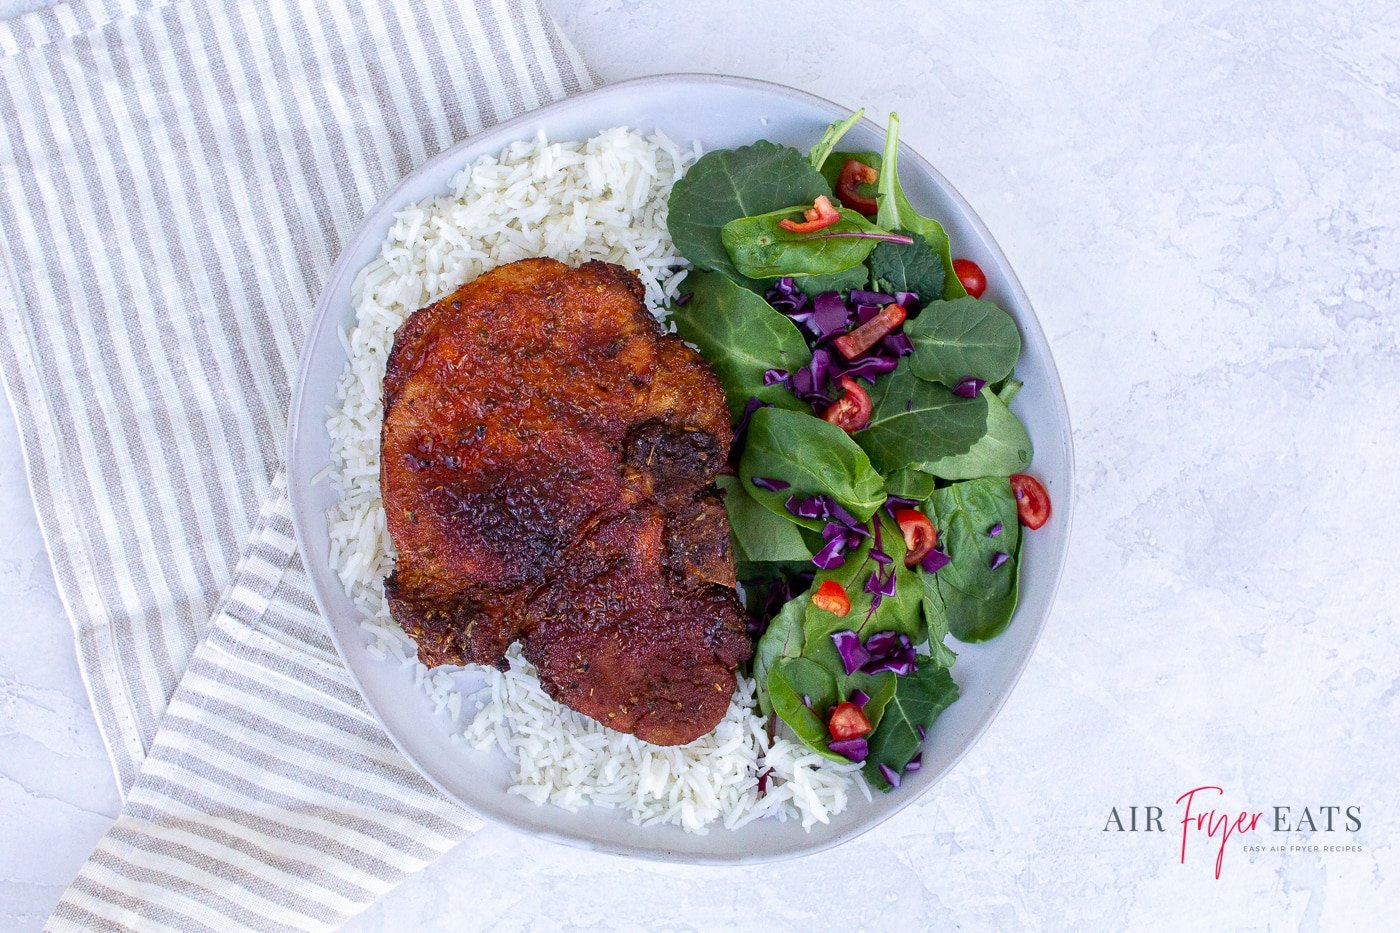 a browned porkchop over a bed of rice with a side salad on a white plate